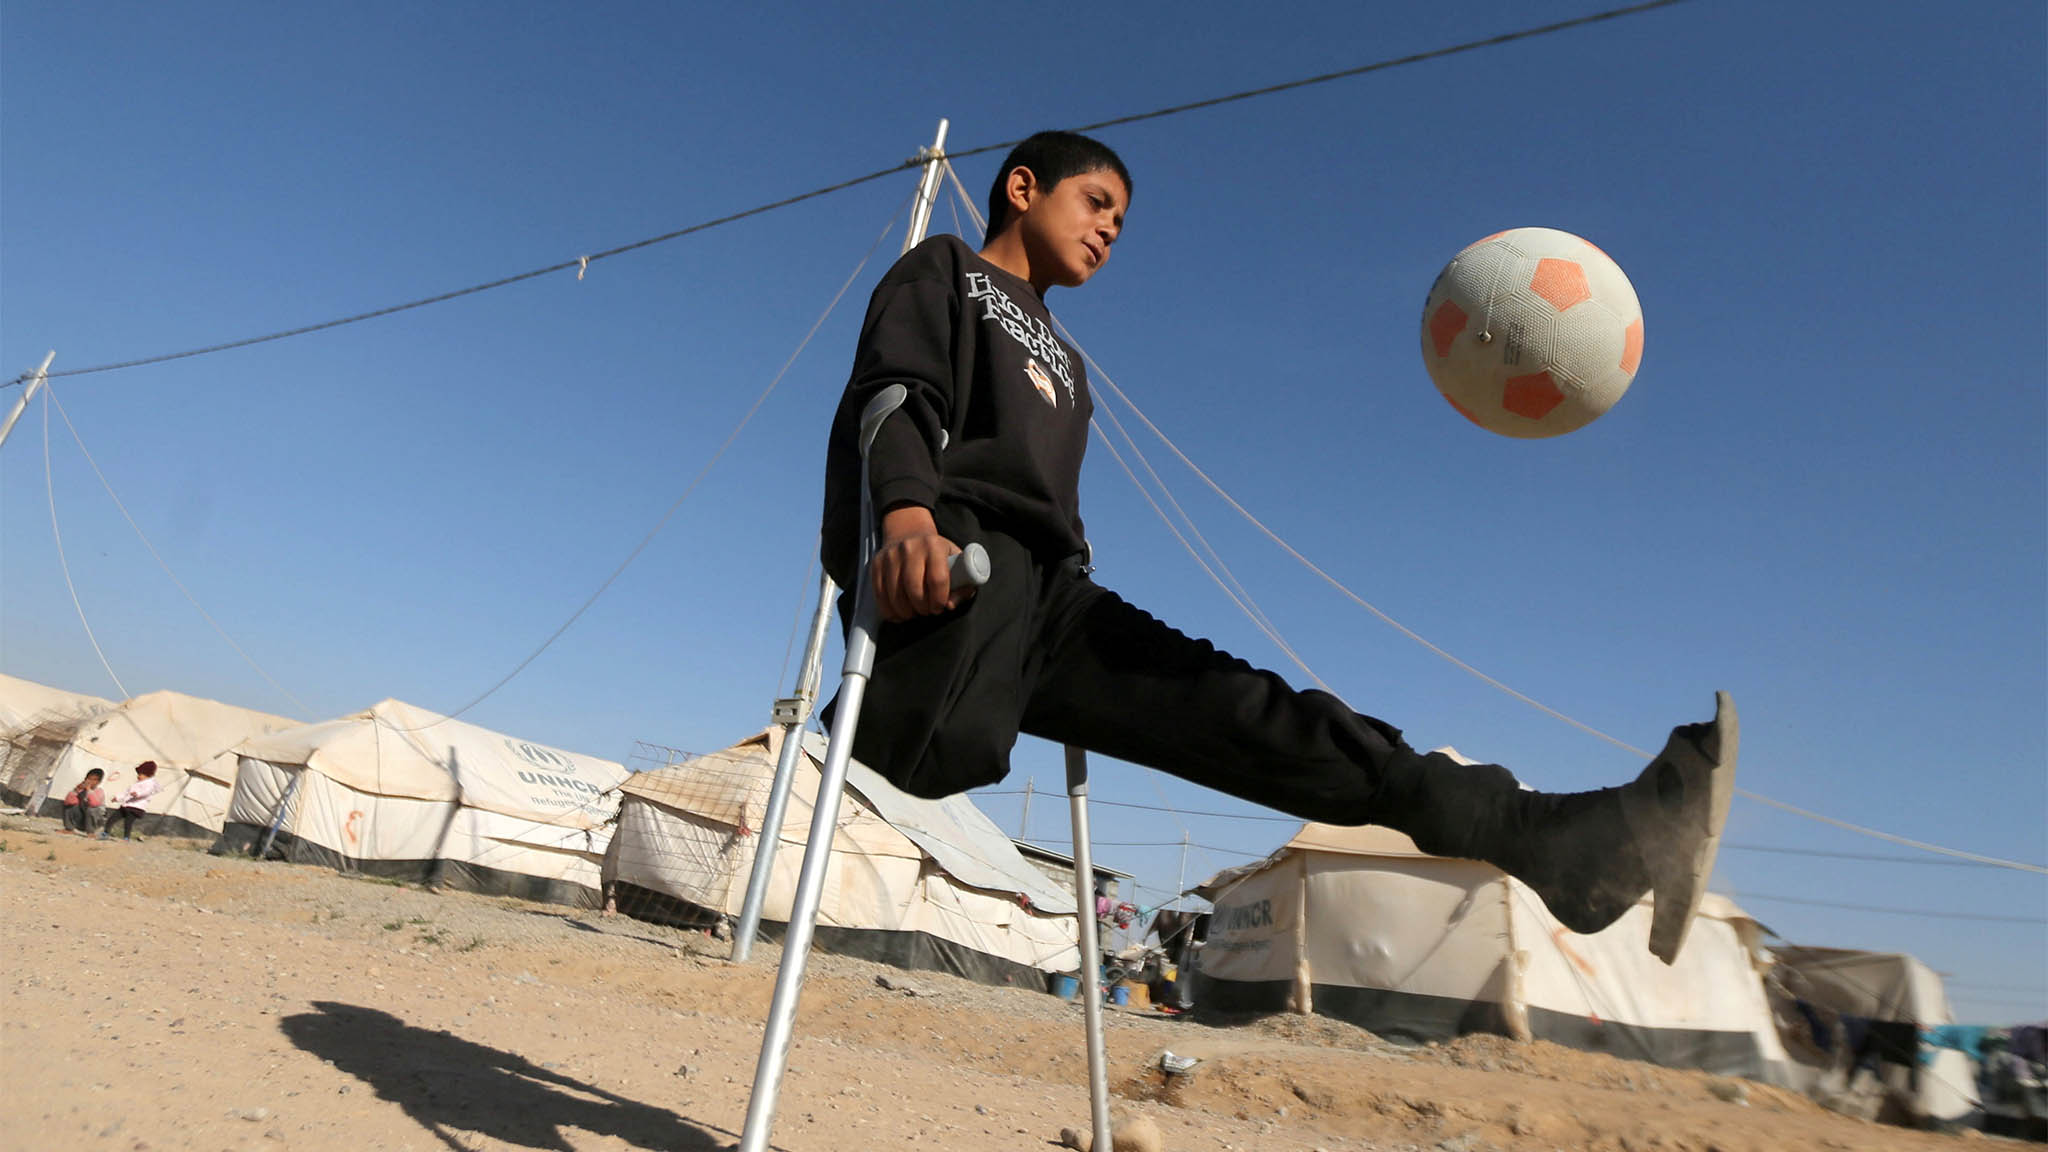 Jasim plays football in Debaga camp, on the outskirts of Erbil